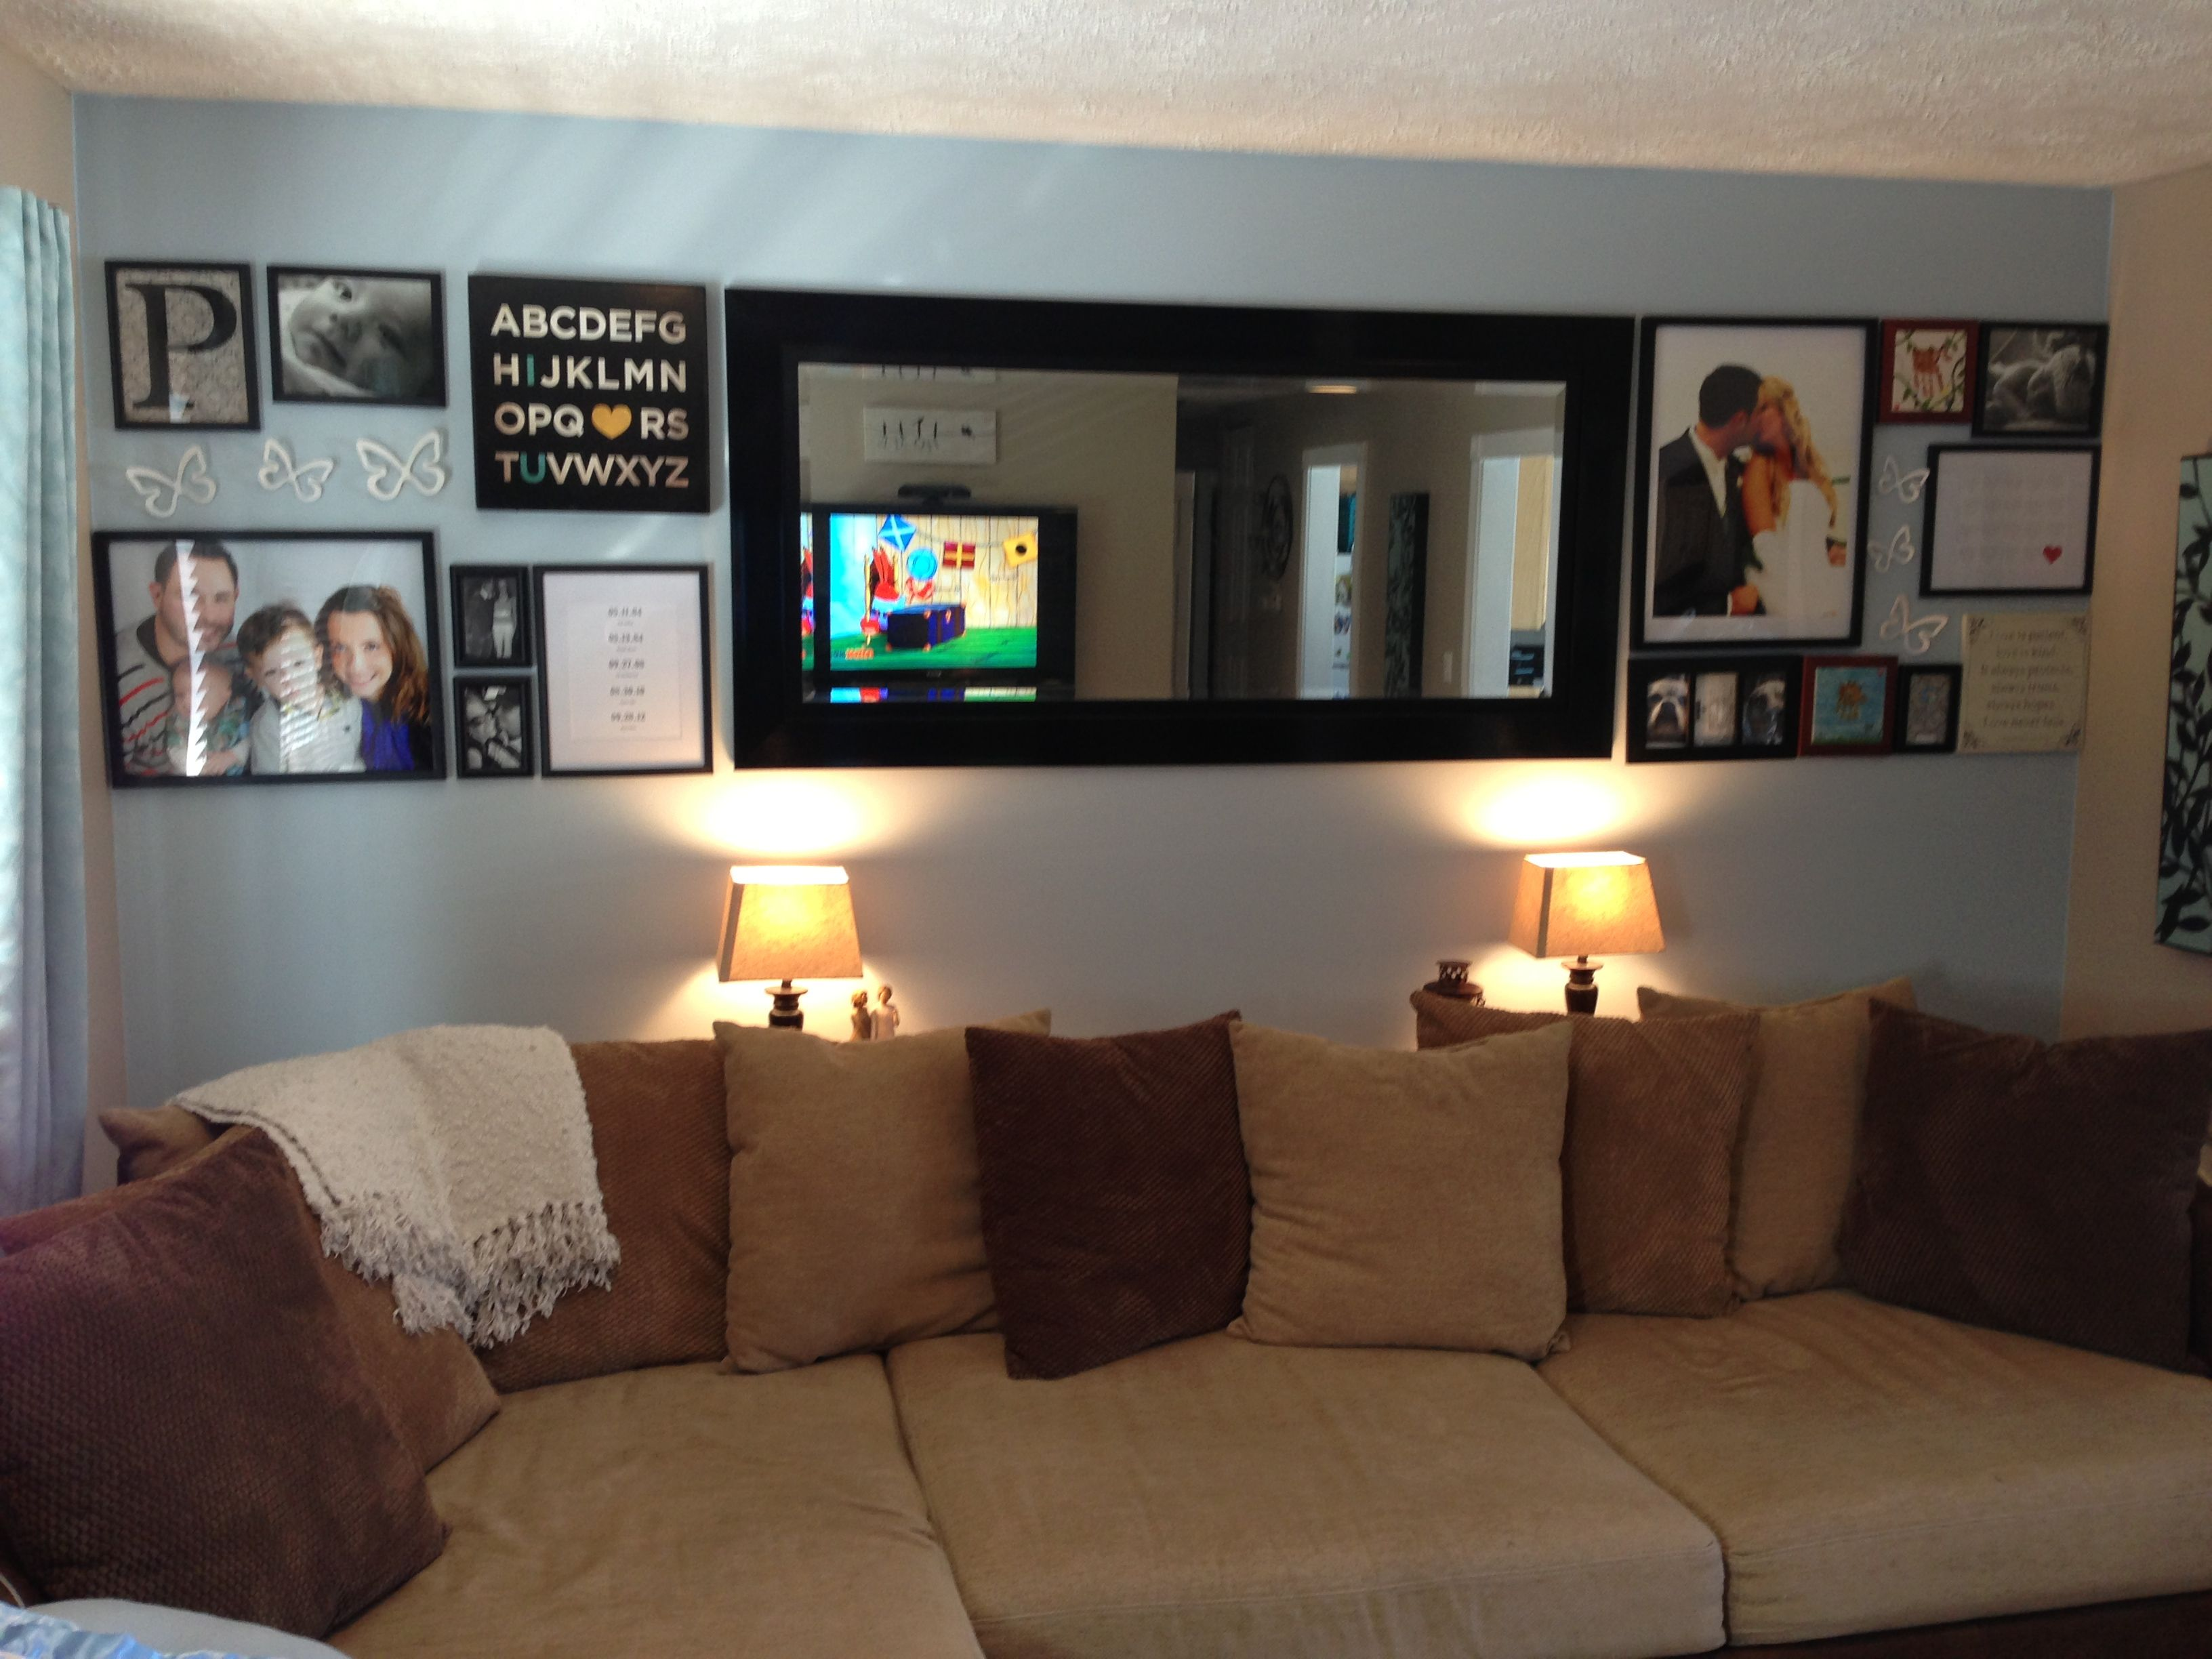 Living room wall photo collage for our home diy home decor home buying living room designs - Wall collage ideas living room ...